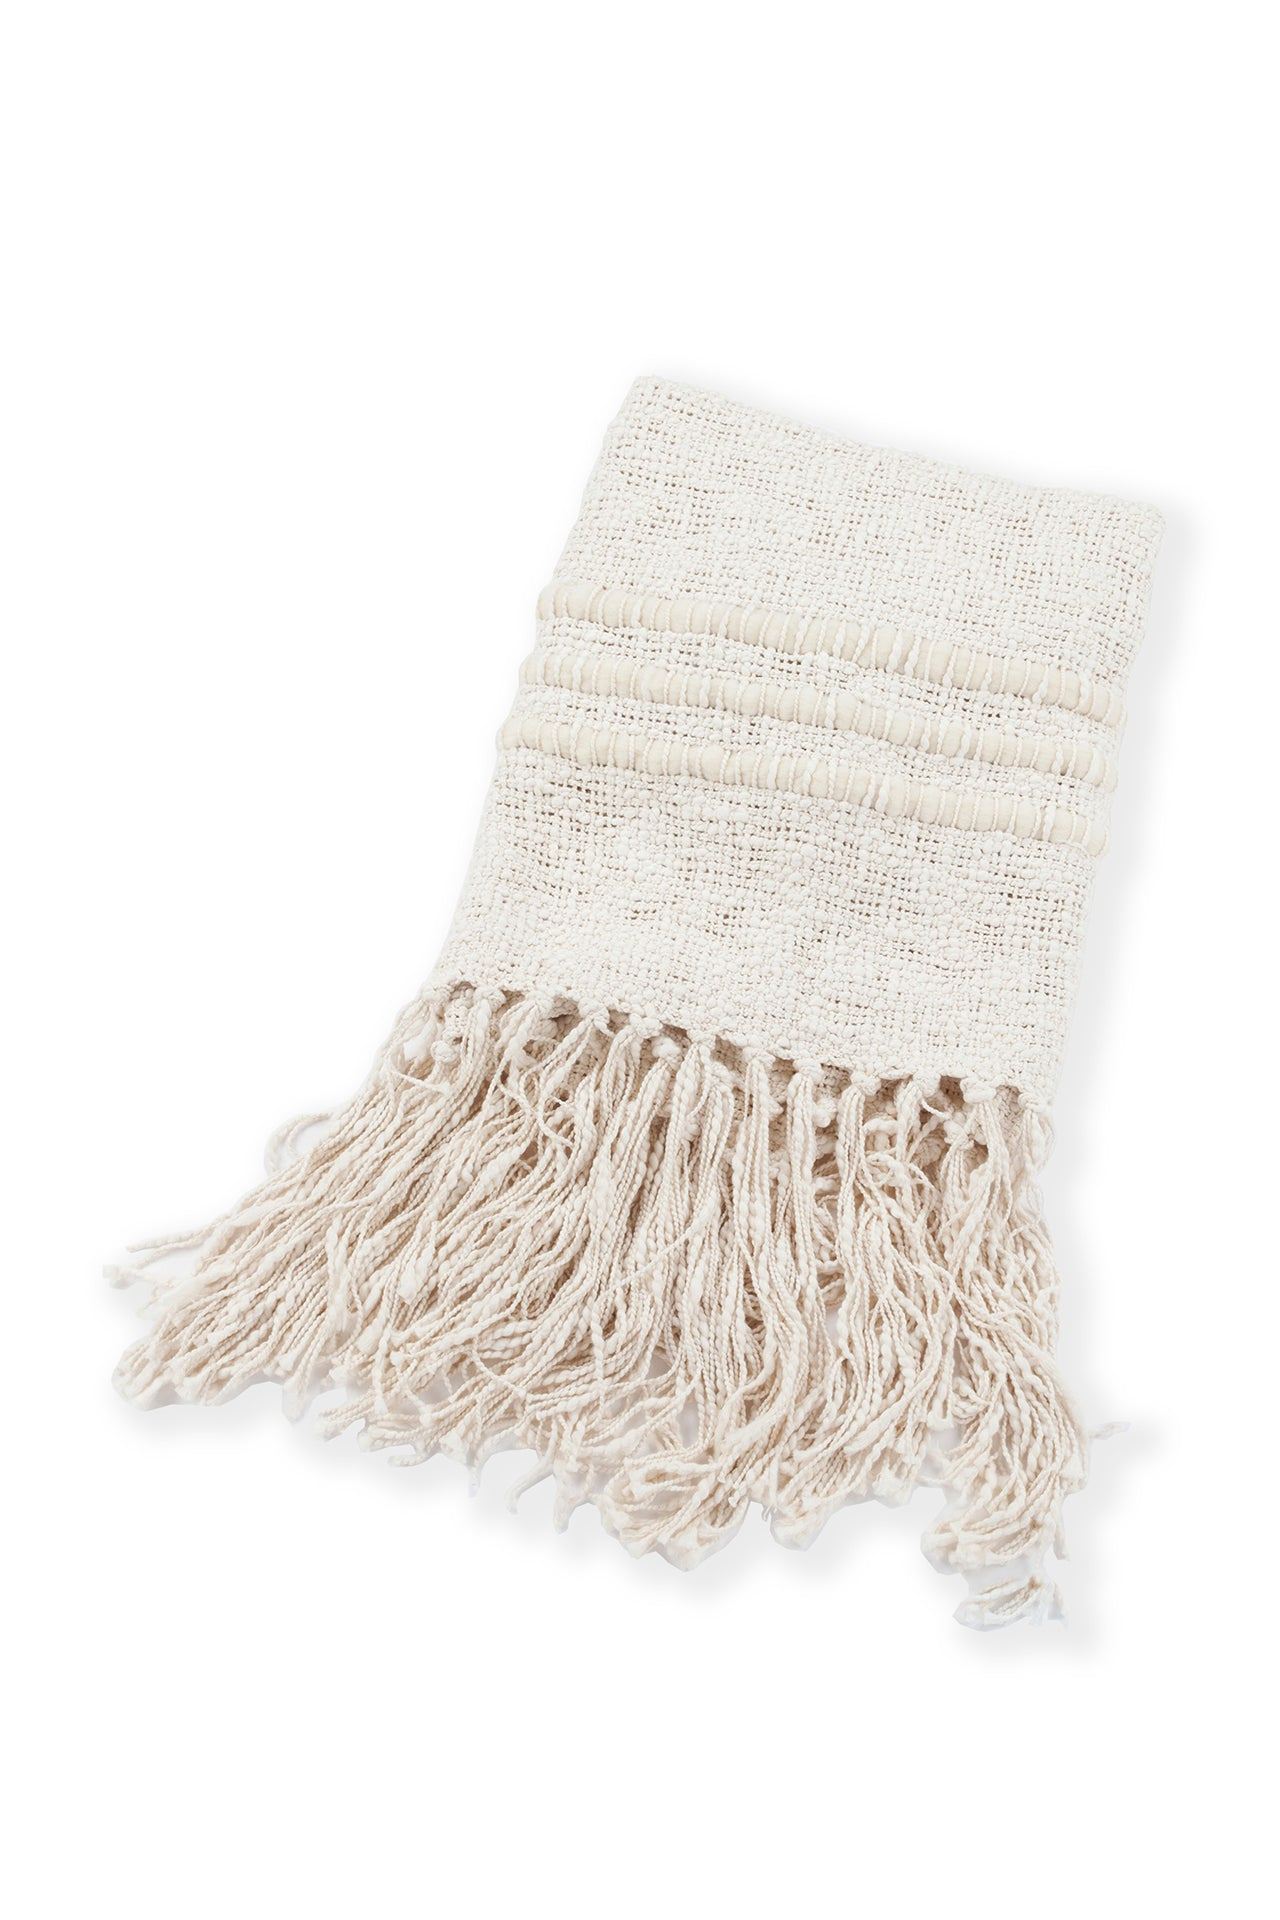 Alma Handwoven Cotton Throw